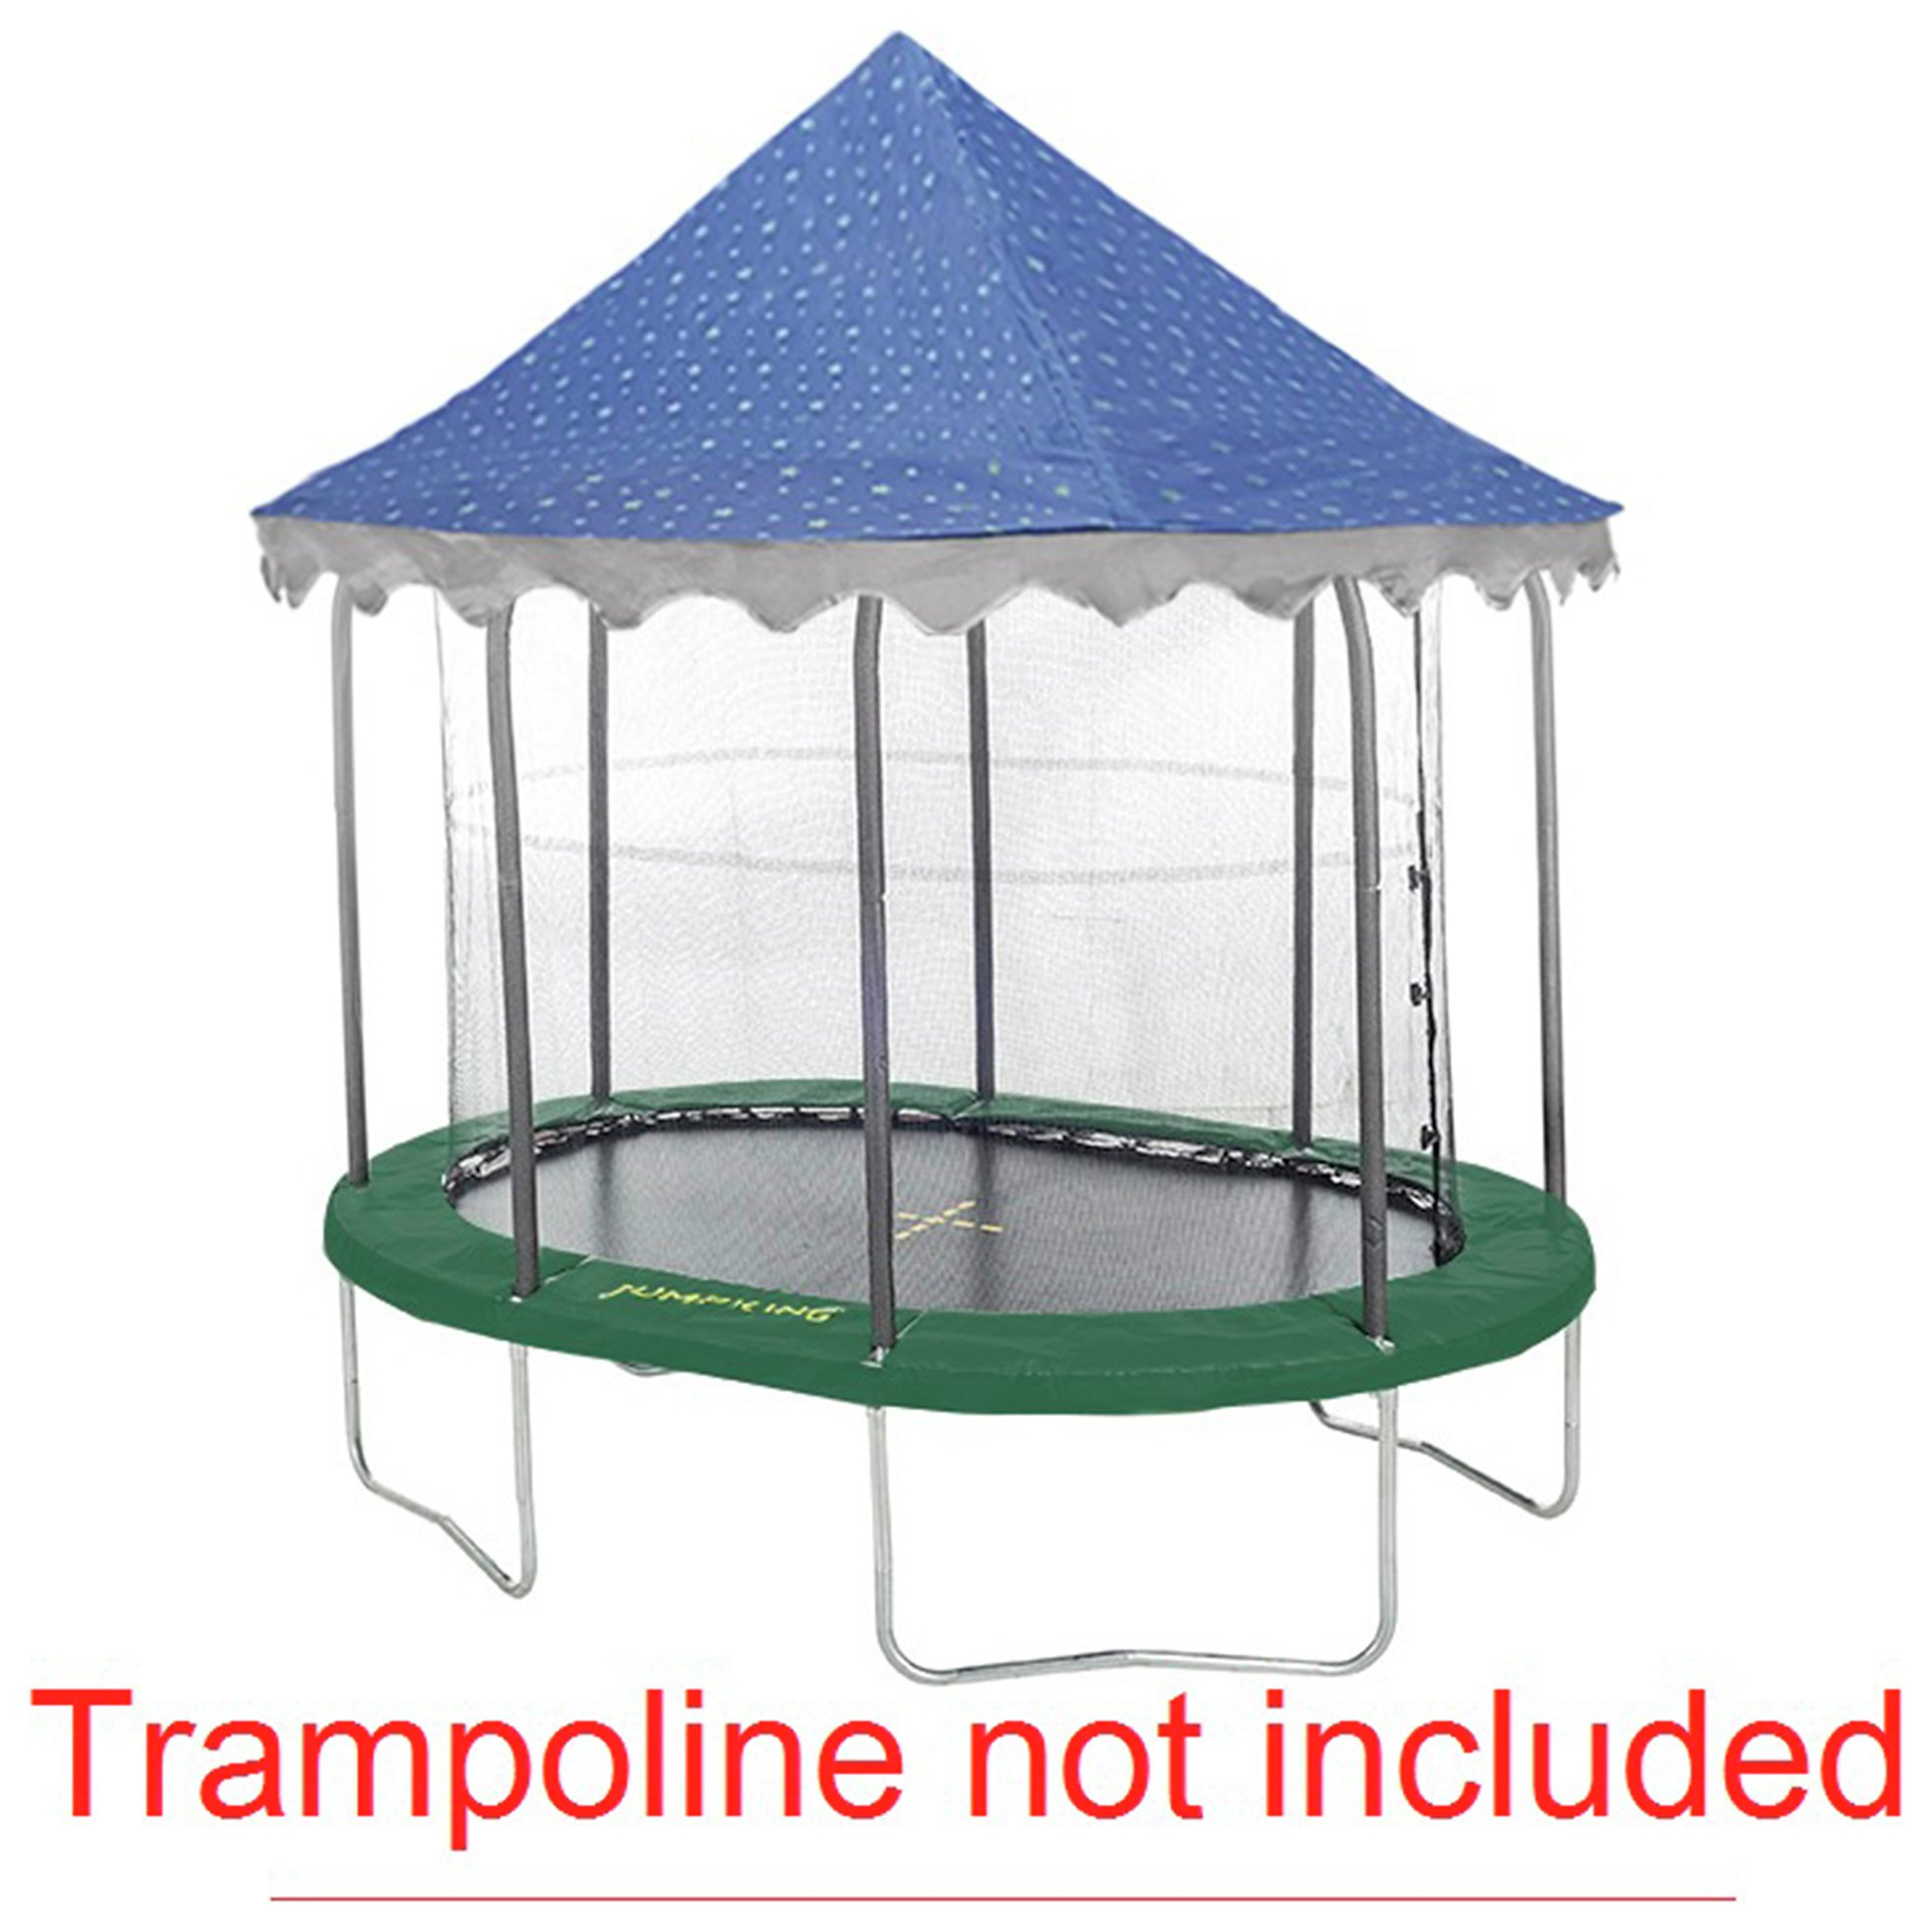 Trampolines Sale: You Will Be Jumping With Joy At These